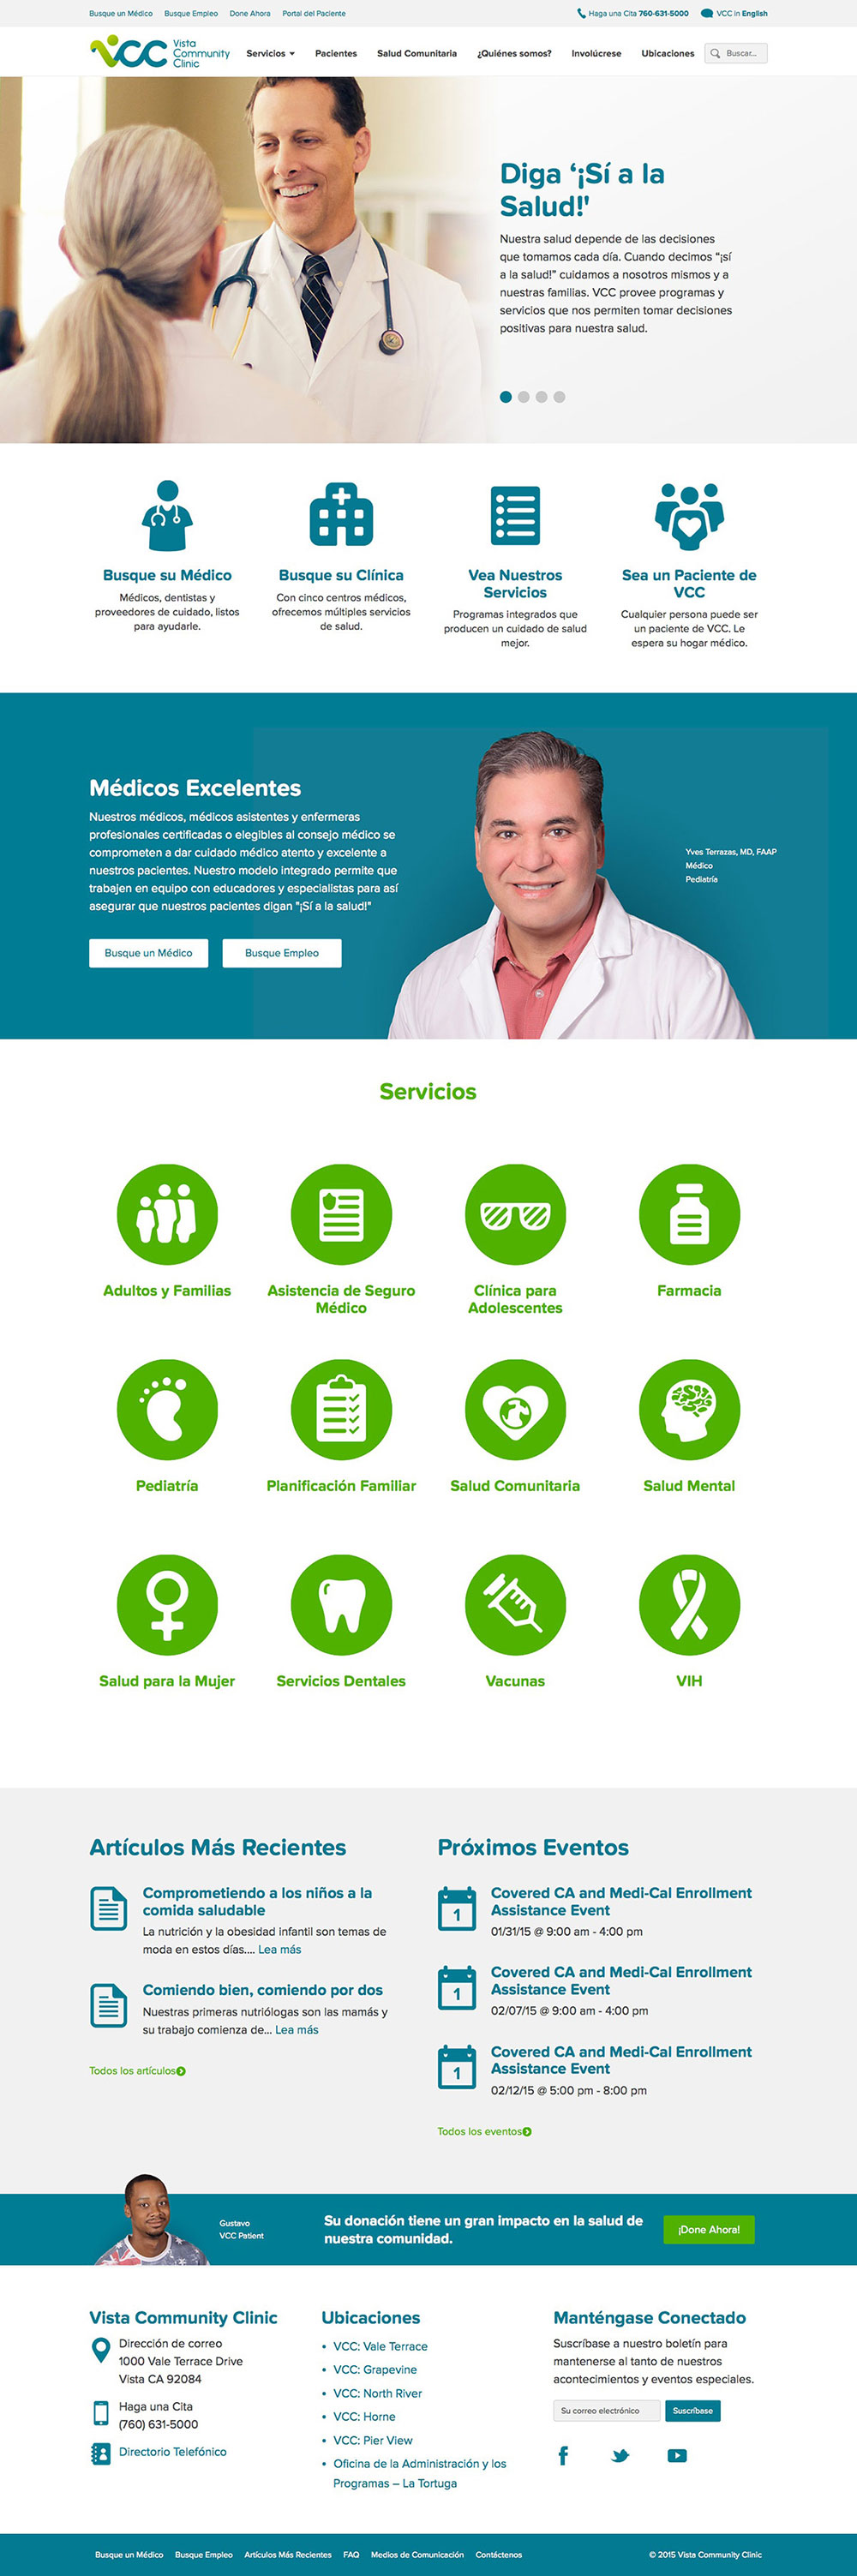 ignyte website design agency